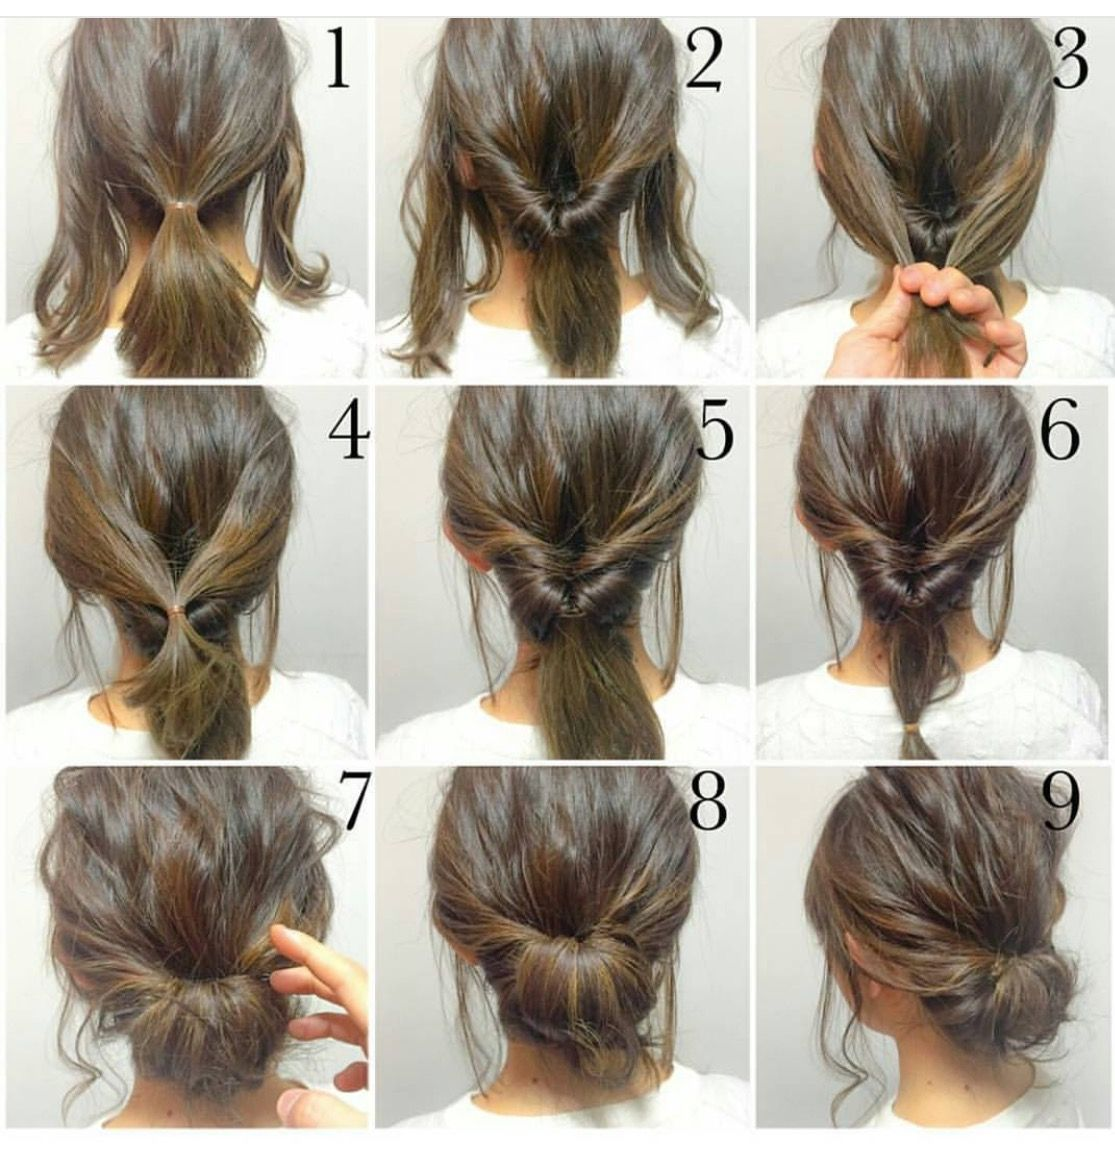 Long Hair Hairstyles Cool Easy Hope This Works Out Quick Morning Hair  Hair  Pinterest